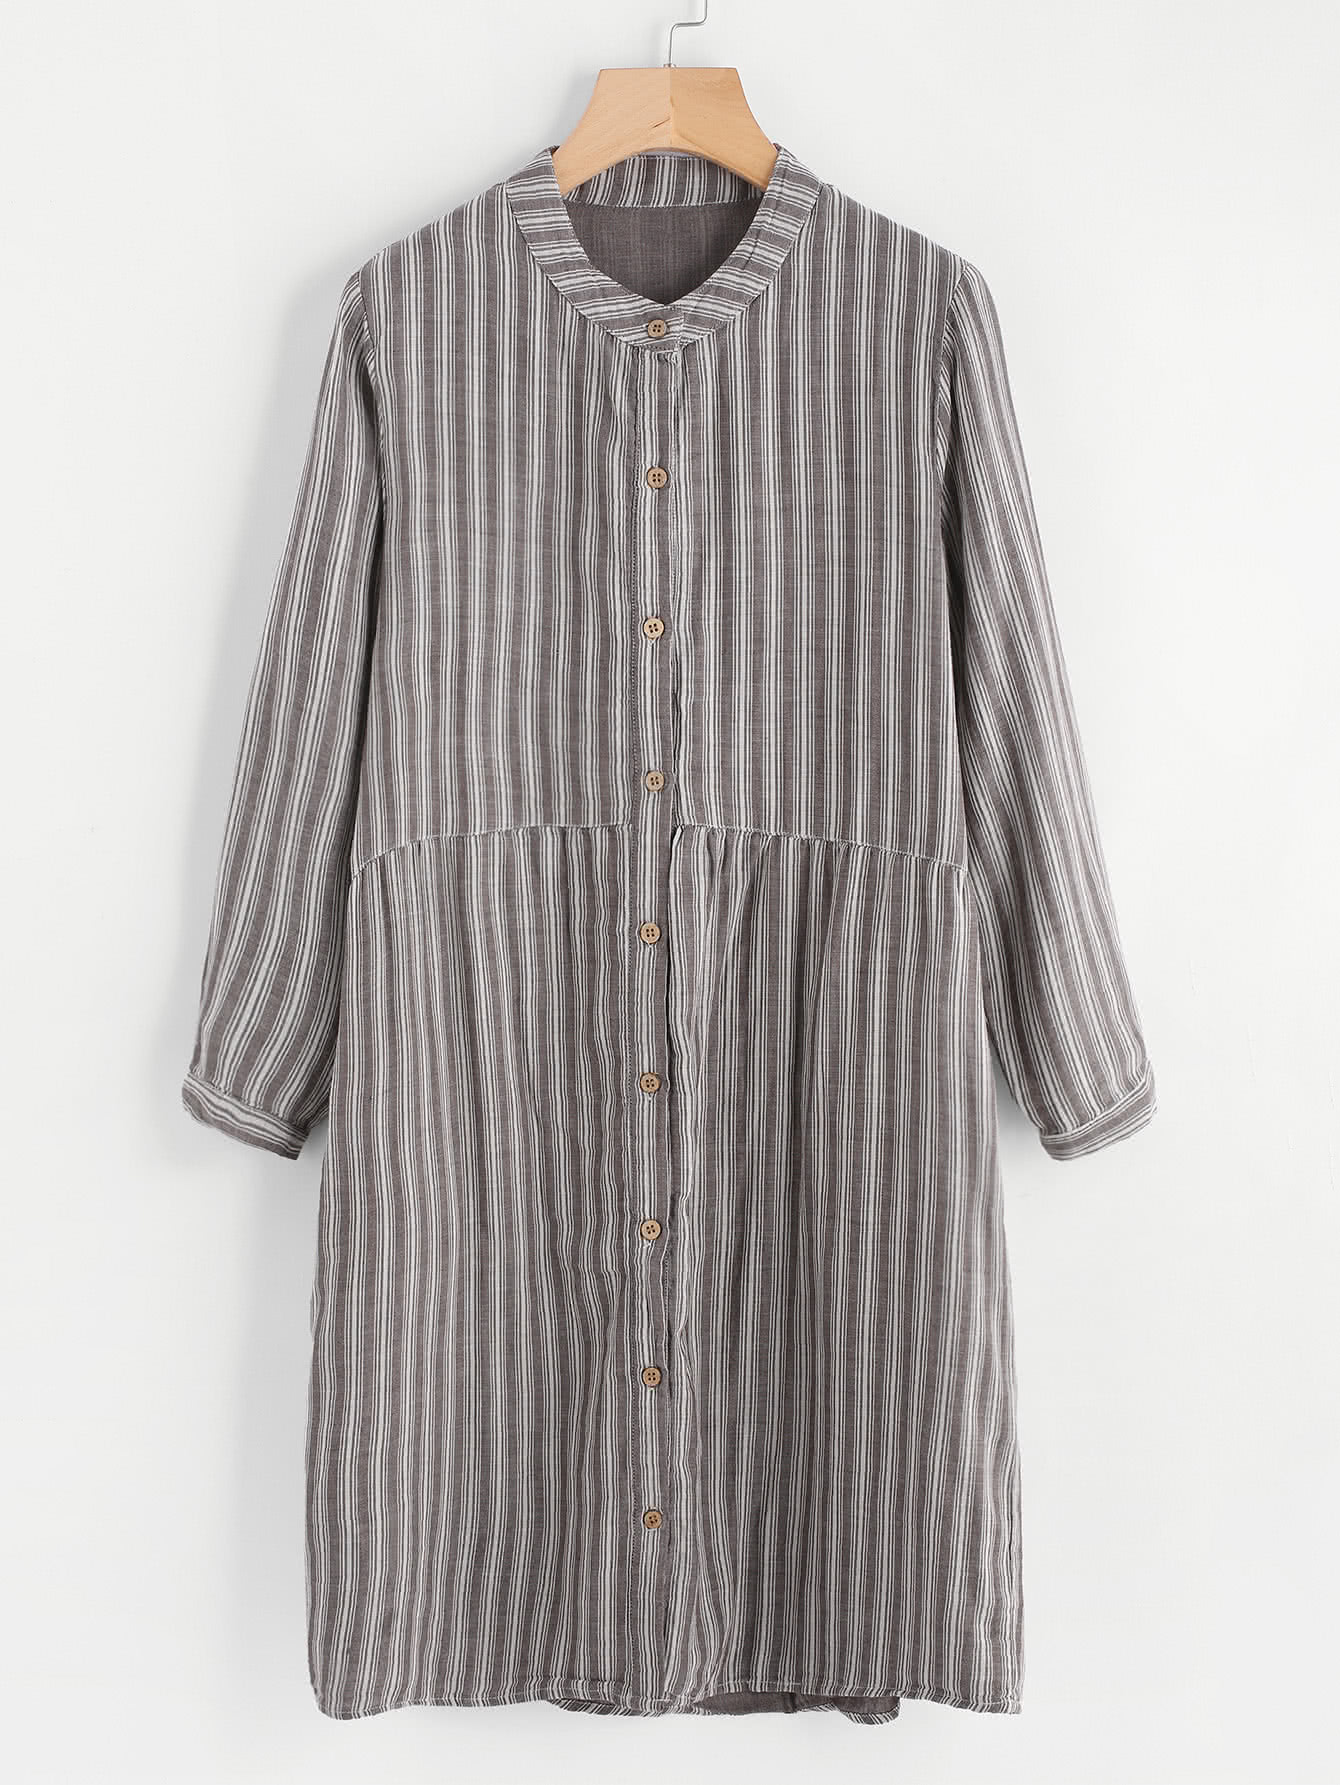 Striped Shirt Dress зонт zest umbrellas 23785 23785 798